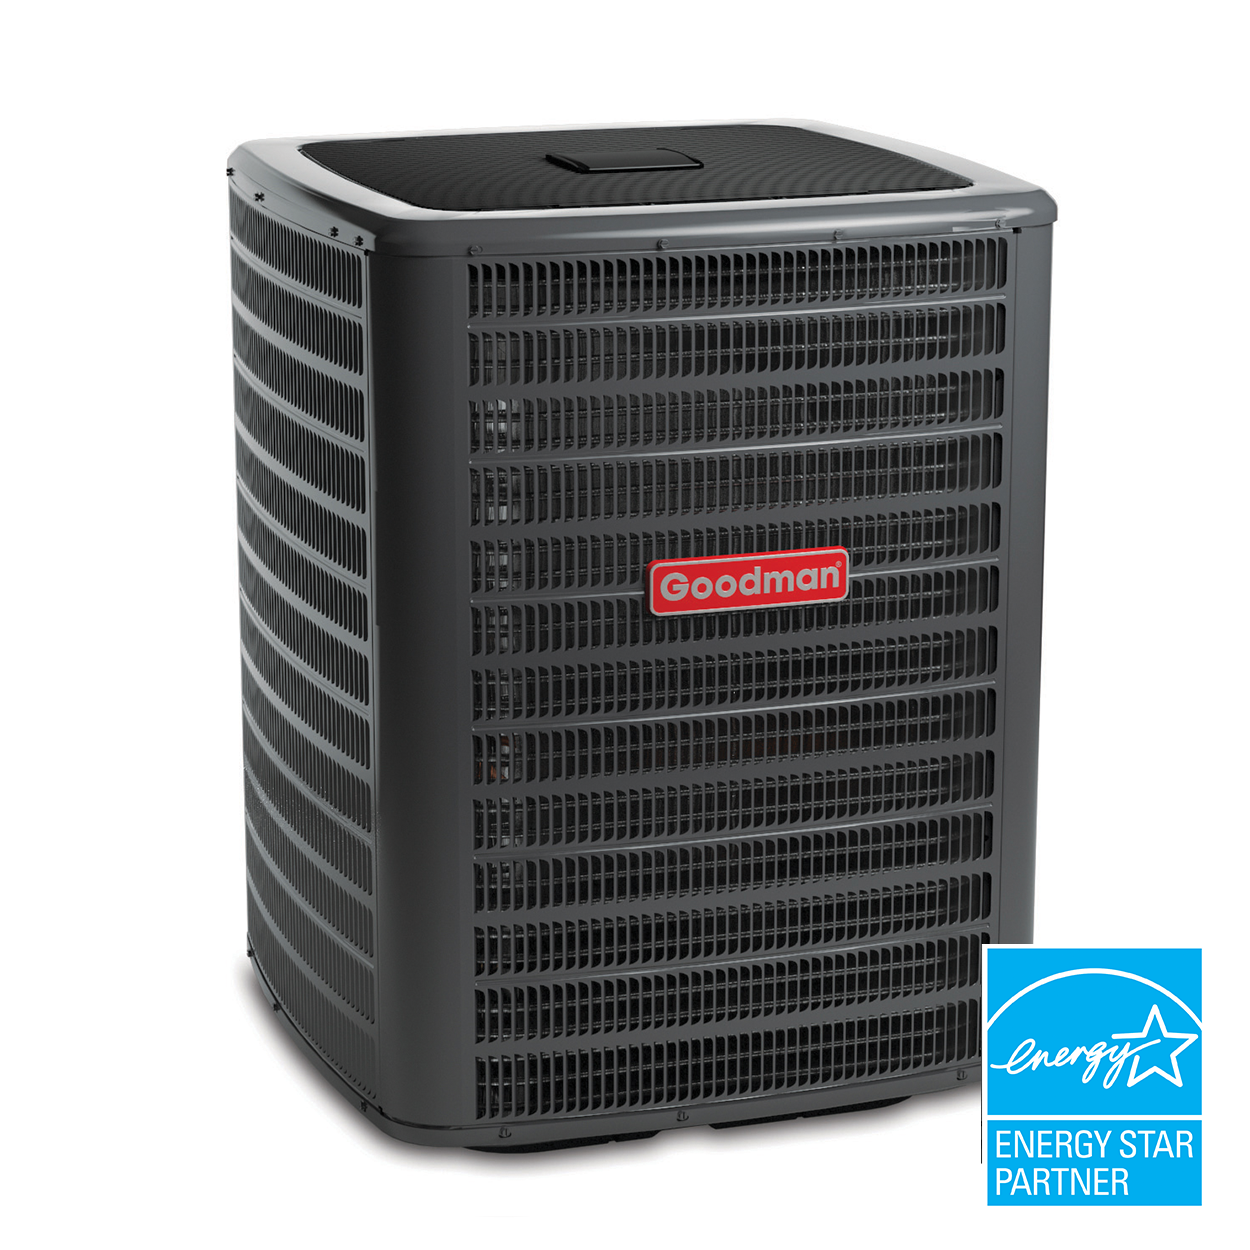 goodman air conditioner png. air conditioners goodman conditioner png